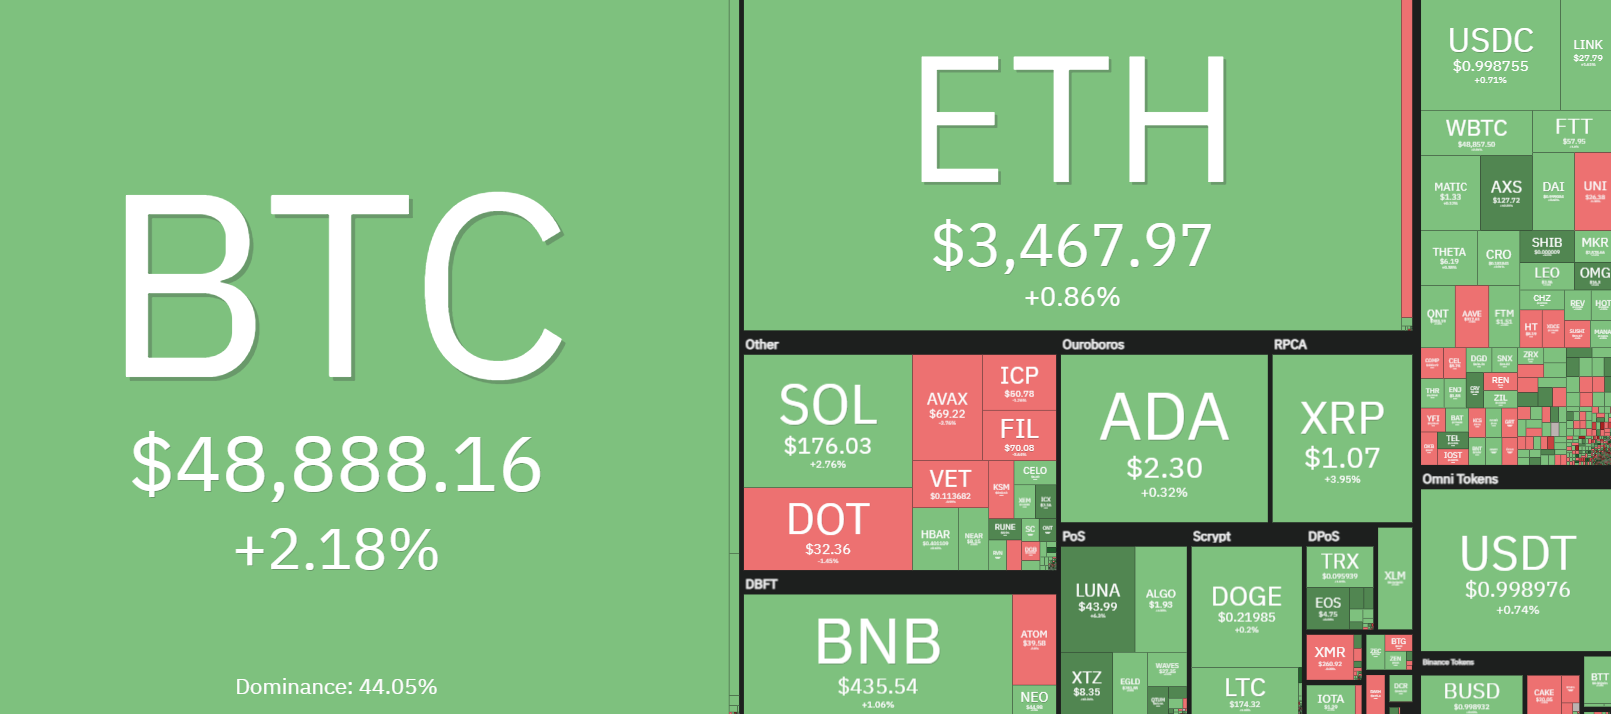 YourCryptoMind edb31f9d-87ff-49d8-b373-ca1bd8bae21b Bitcoin price surge to $49K prompts several altcoins to hit new all-time highs